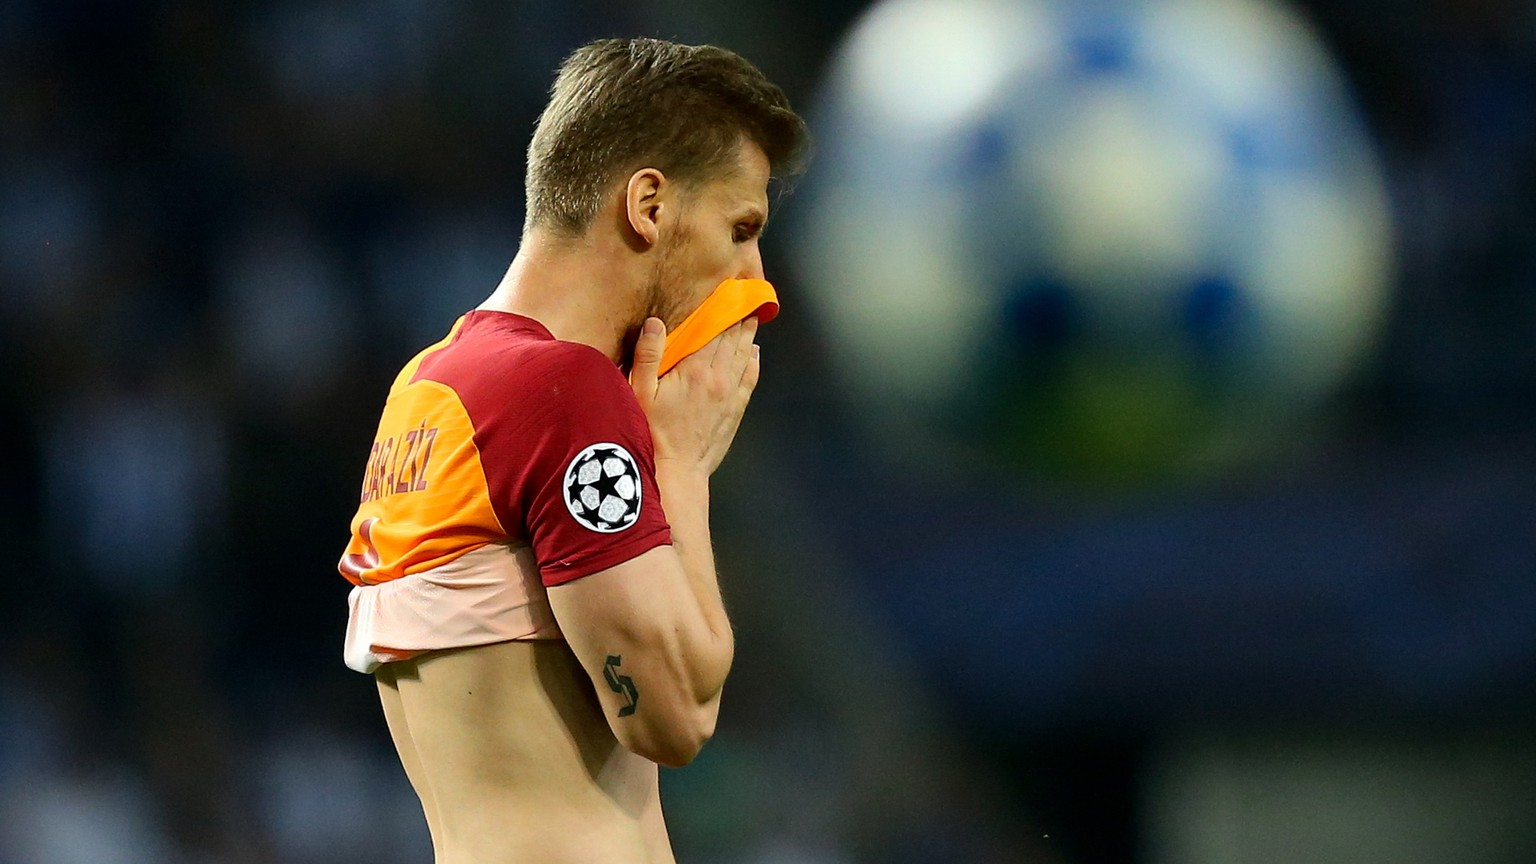 epa07067610 Galatasaray player Serdar Aziz during the UEFA Champions League group D soccer match between Porto and Galatasaray at the Dragao stadium, Porto, Portugal, 03 October 2018.  EPA/JOSE COELHO